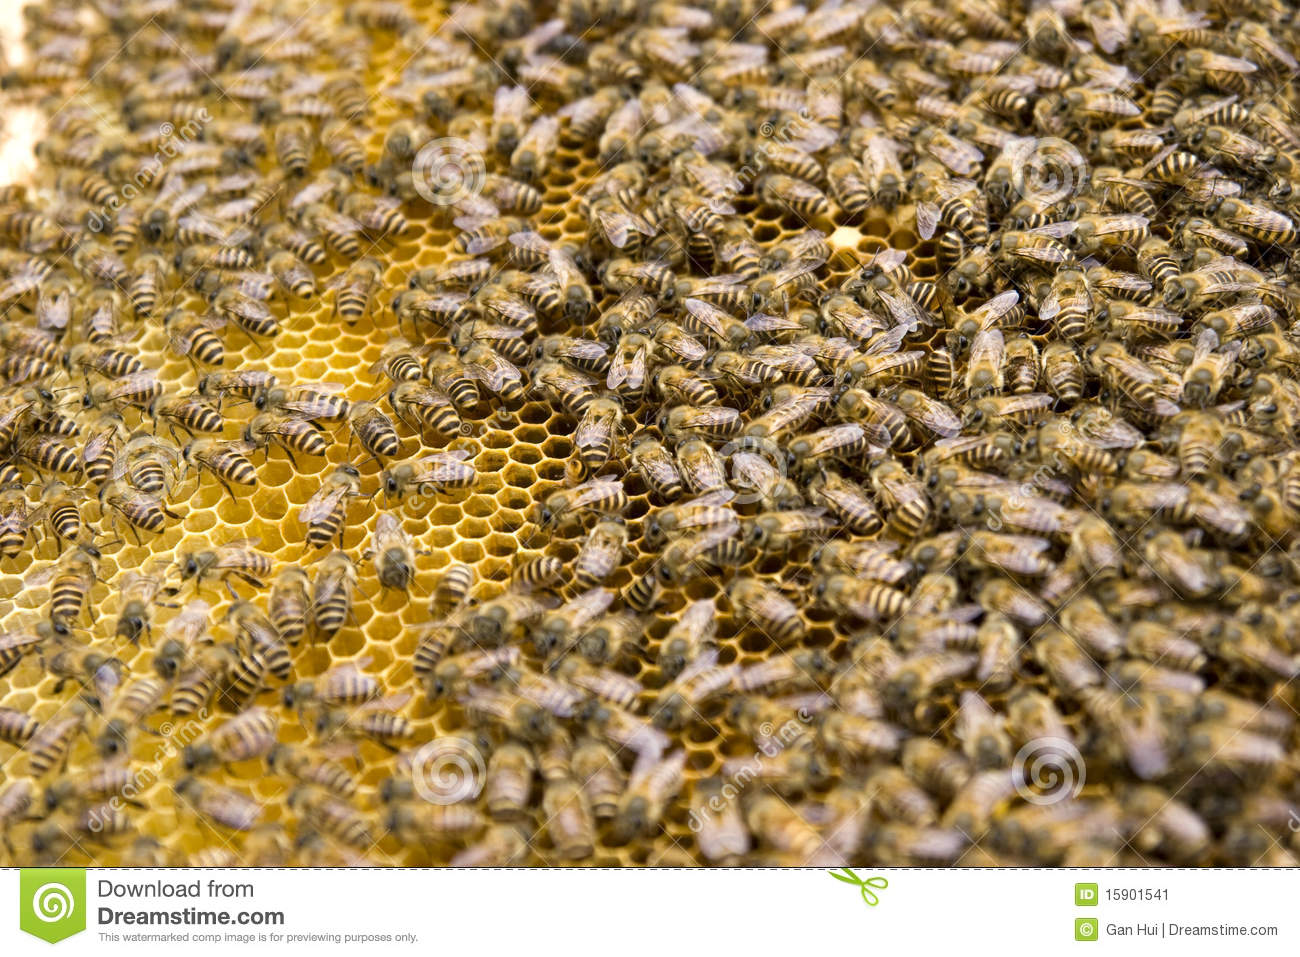 content industry agriculture seafood animals crops animal production bees